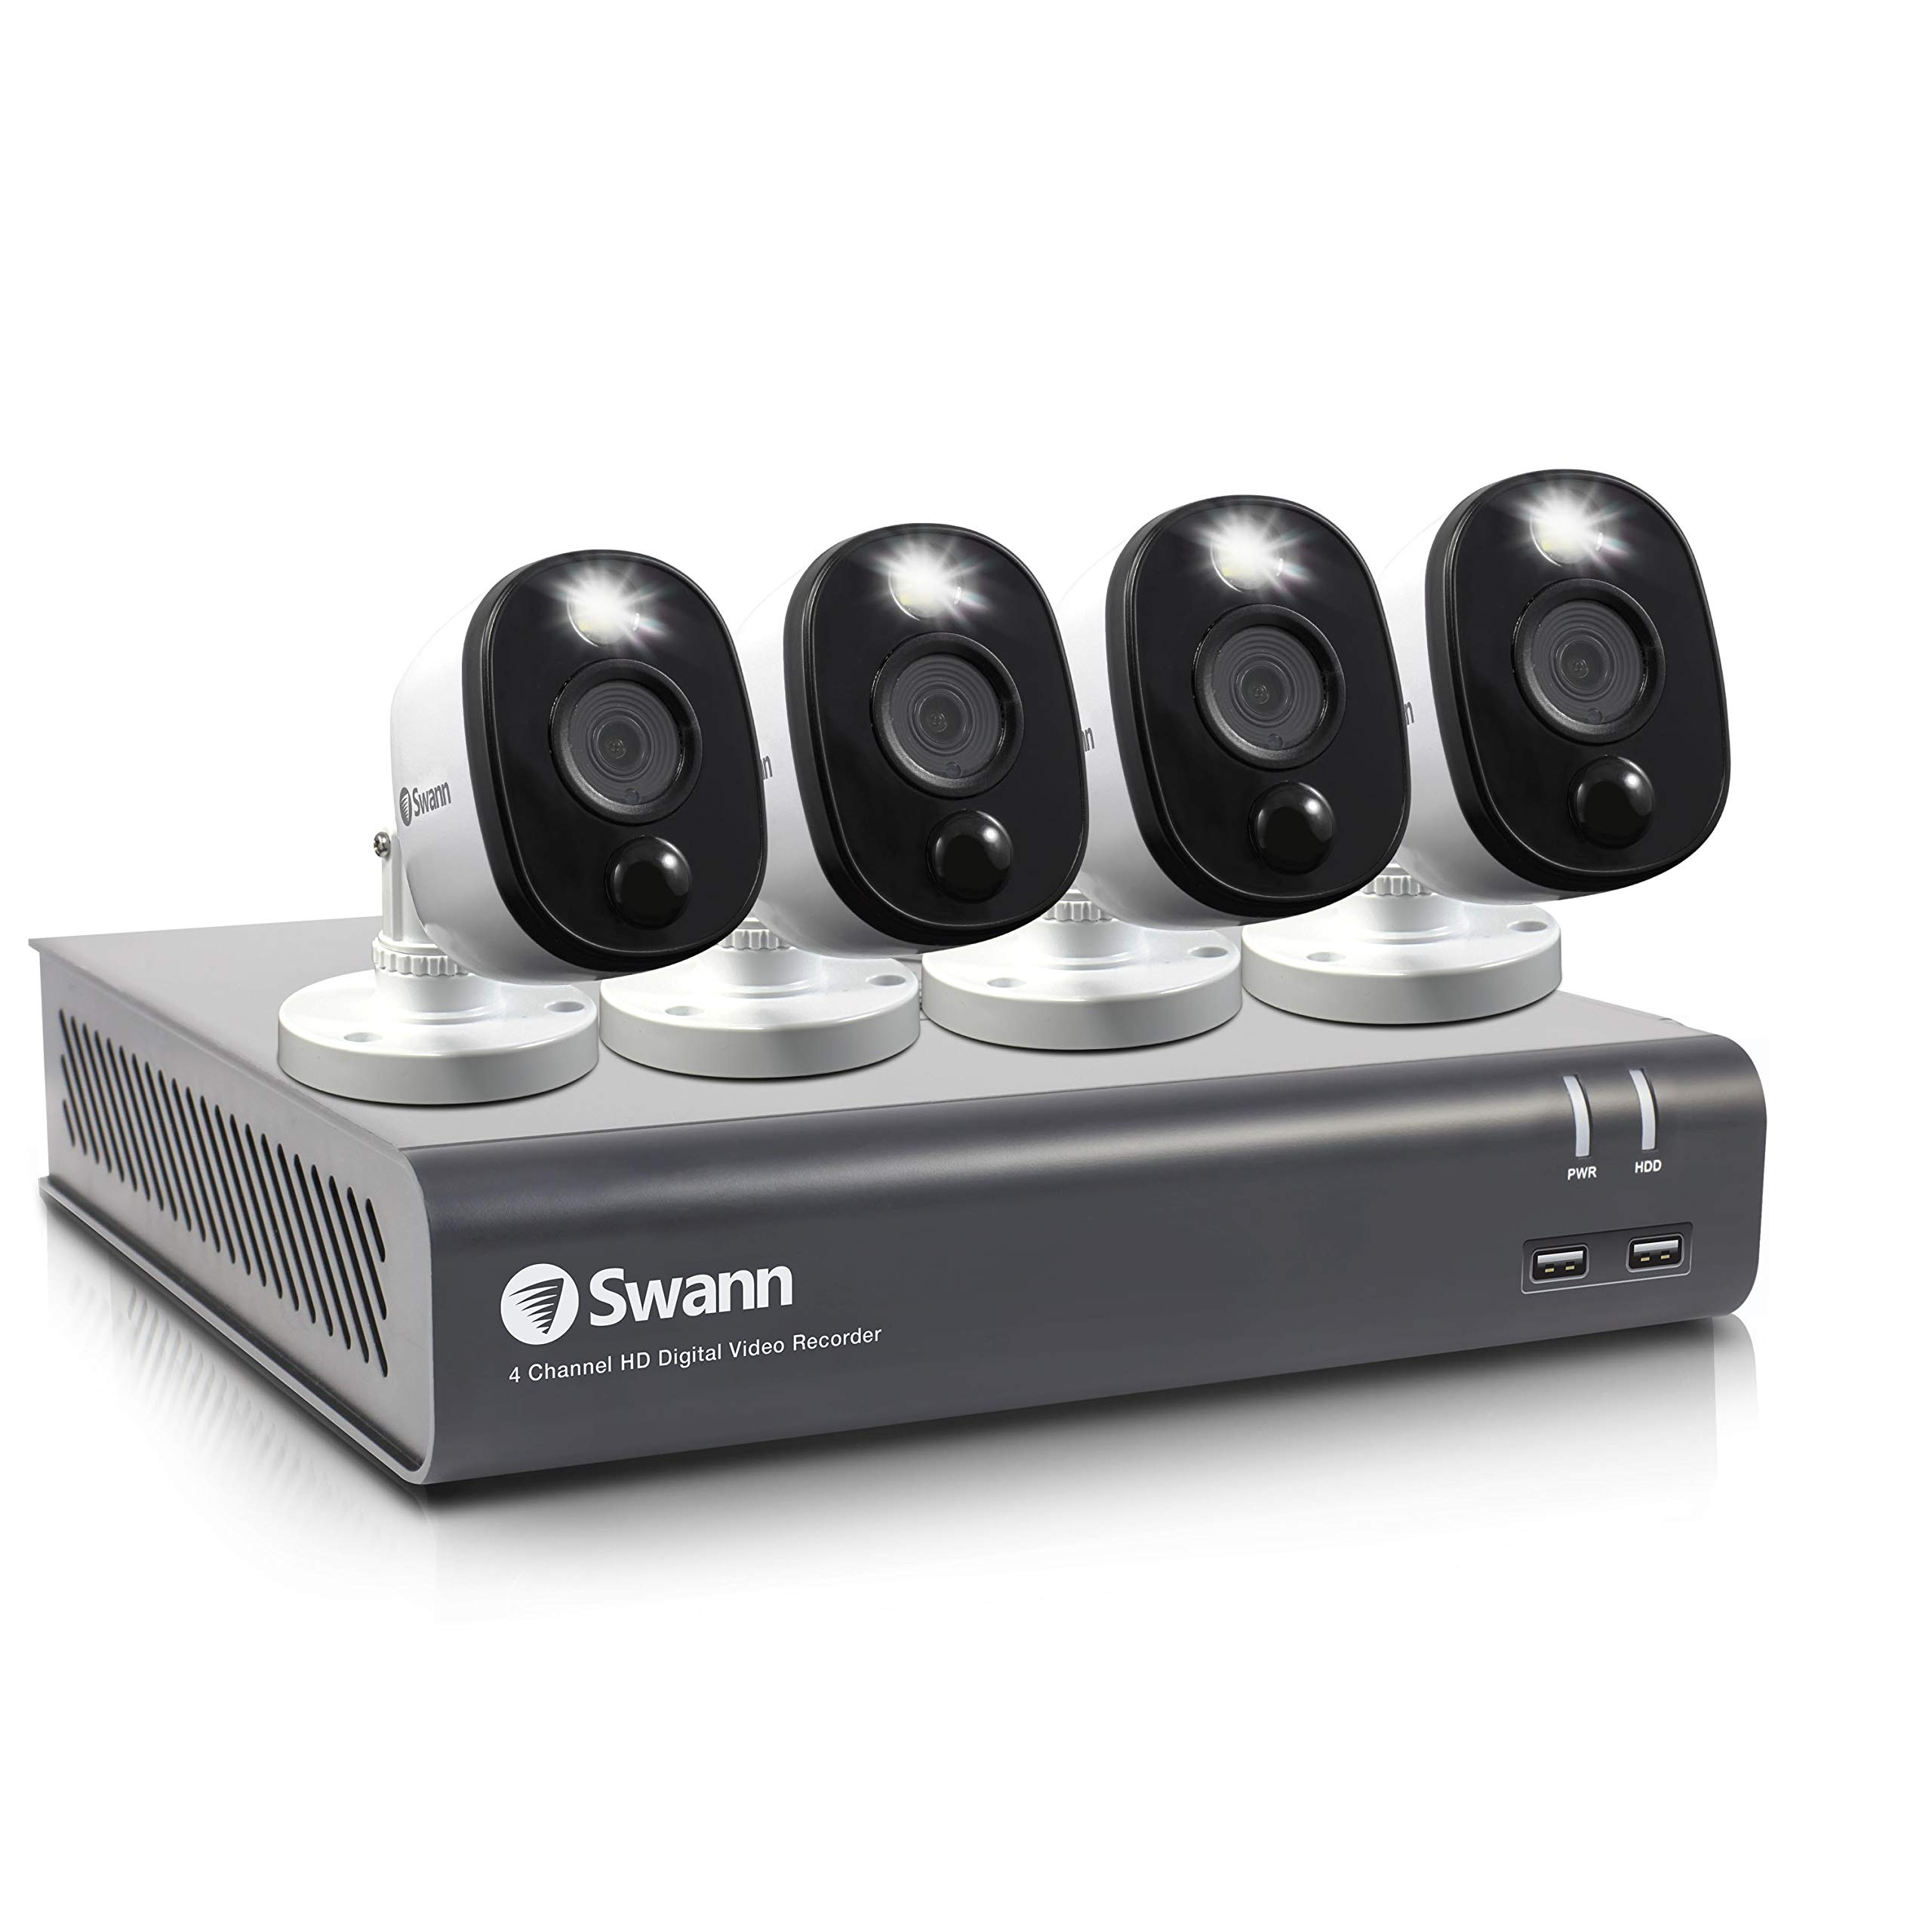 Swann 4 Channel 4 Camera Security System, Wired Surveillance 1080p HD DVR 1TB HDD, Audio Capture, Weatherproof, Color Night Vision, Heat & Motion Sensing Warning Light, Alexa + Google, SWDVK-445804WL by Swann